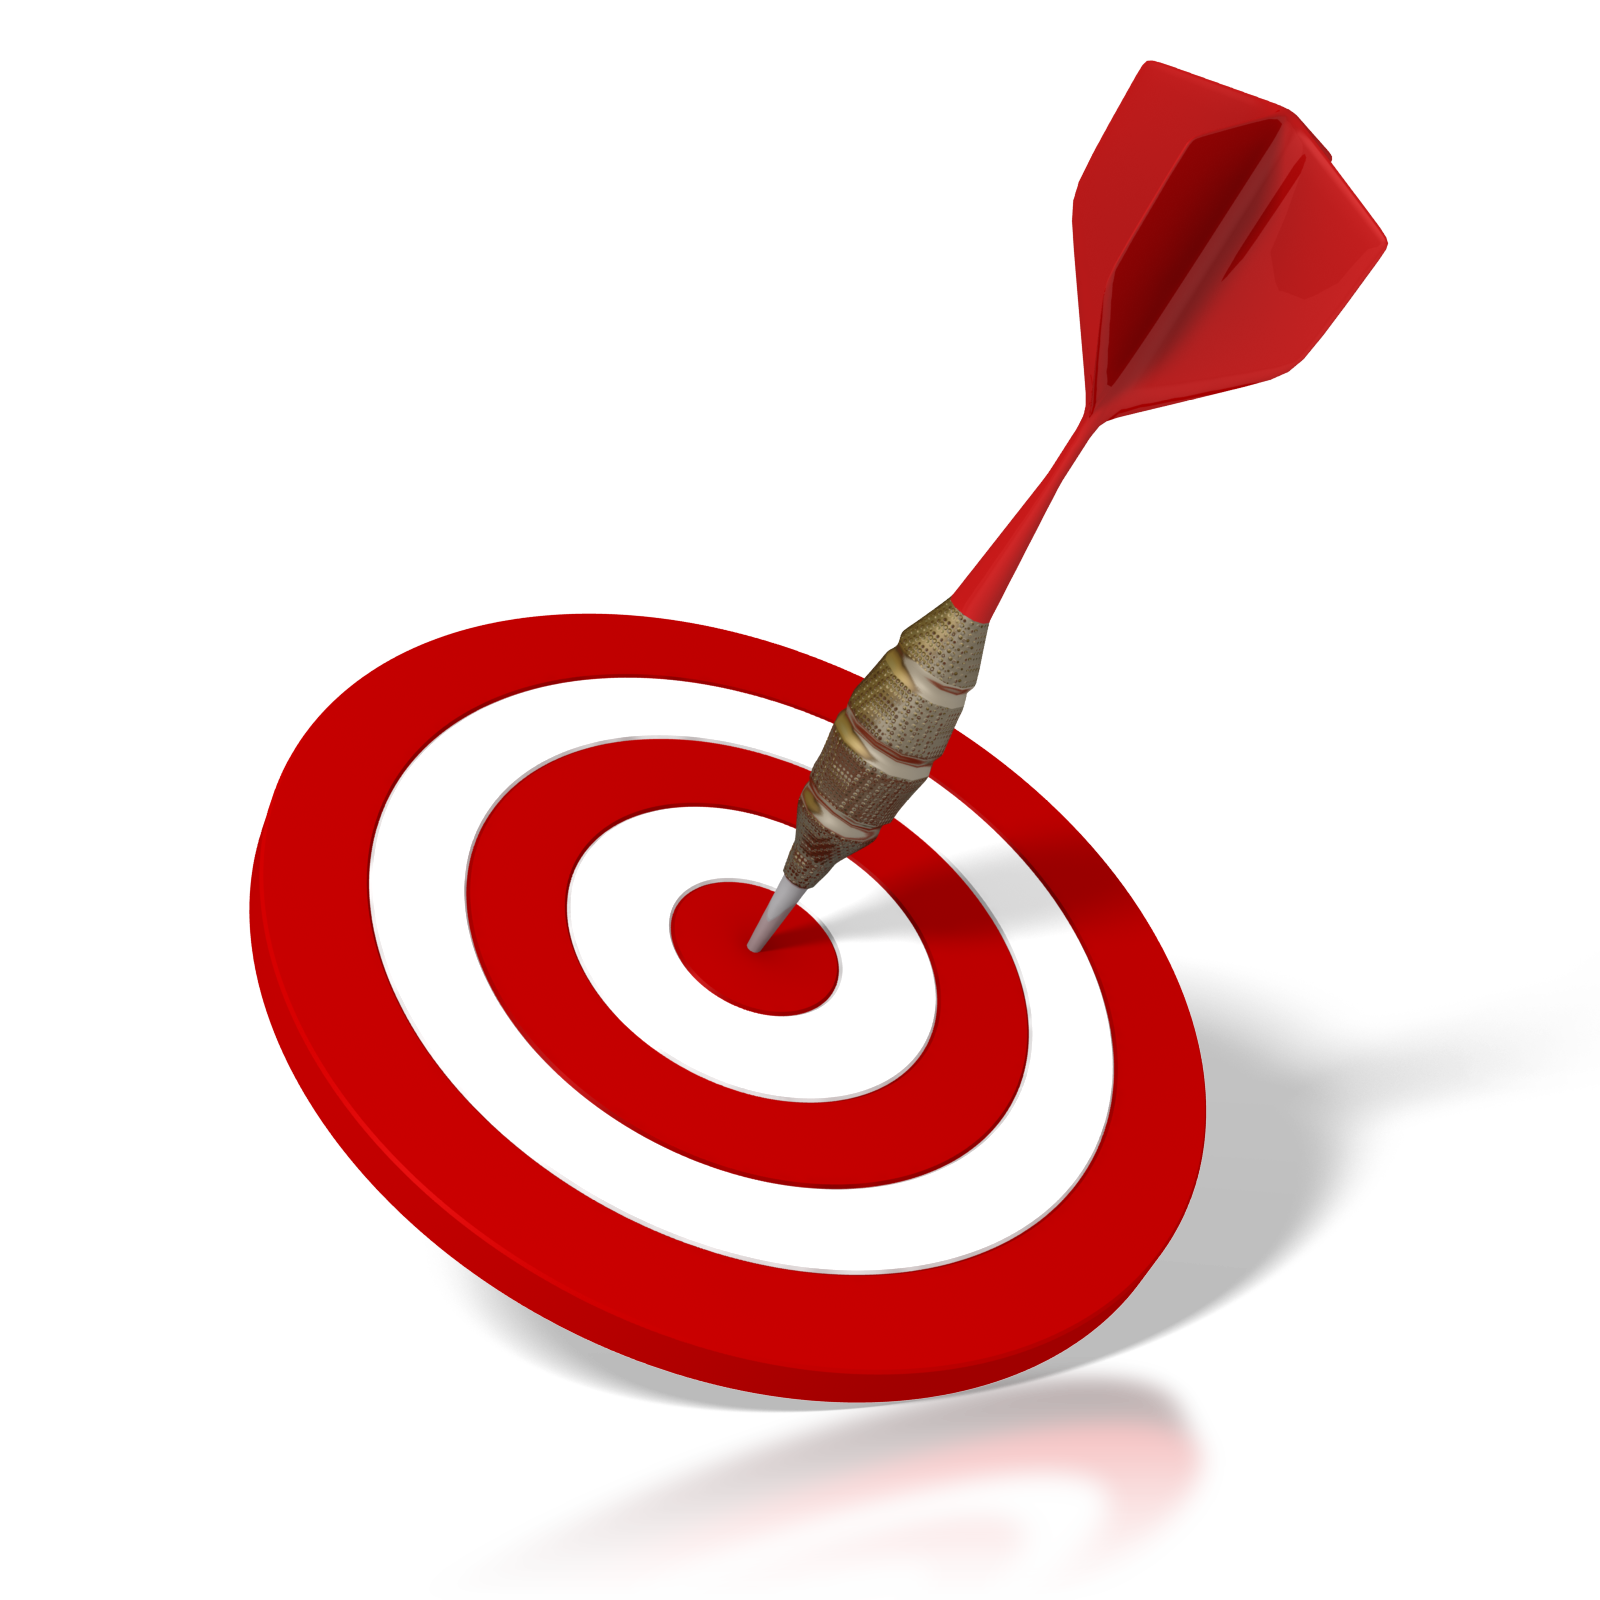 Dart clipart red. Target png images free